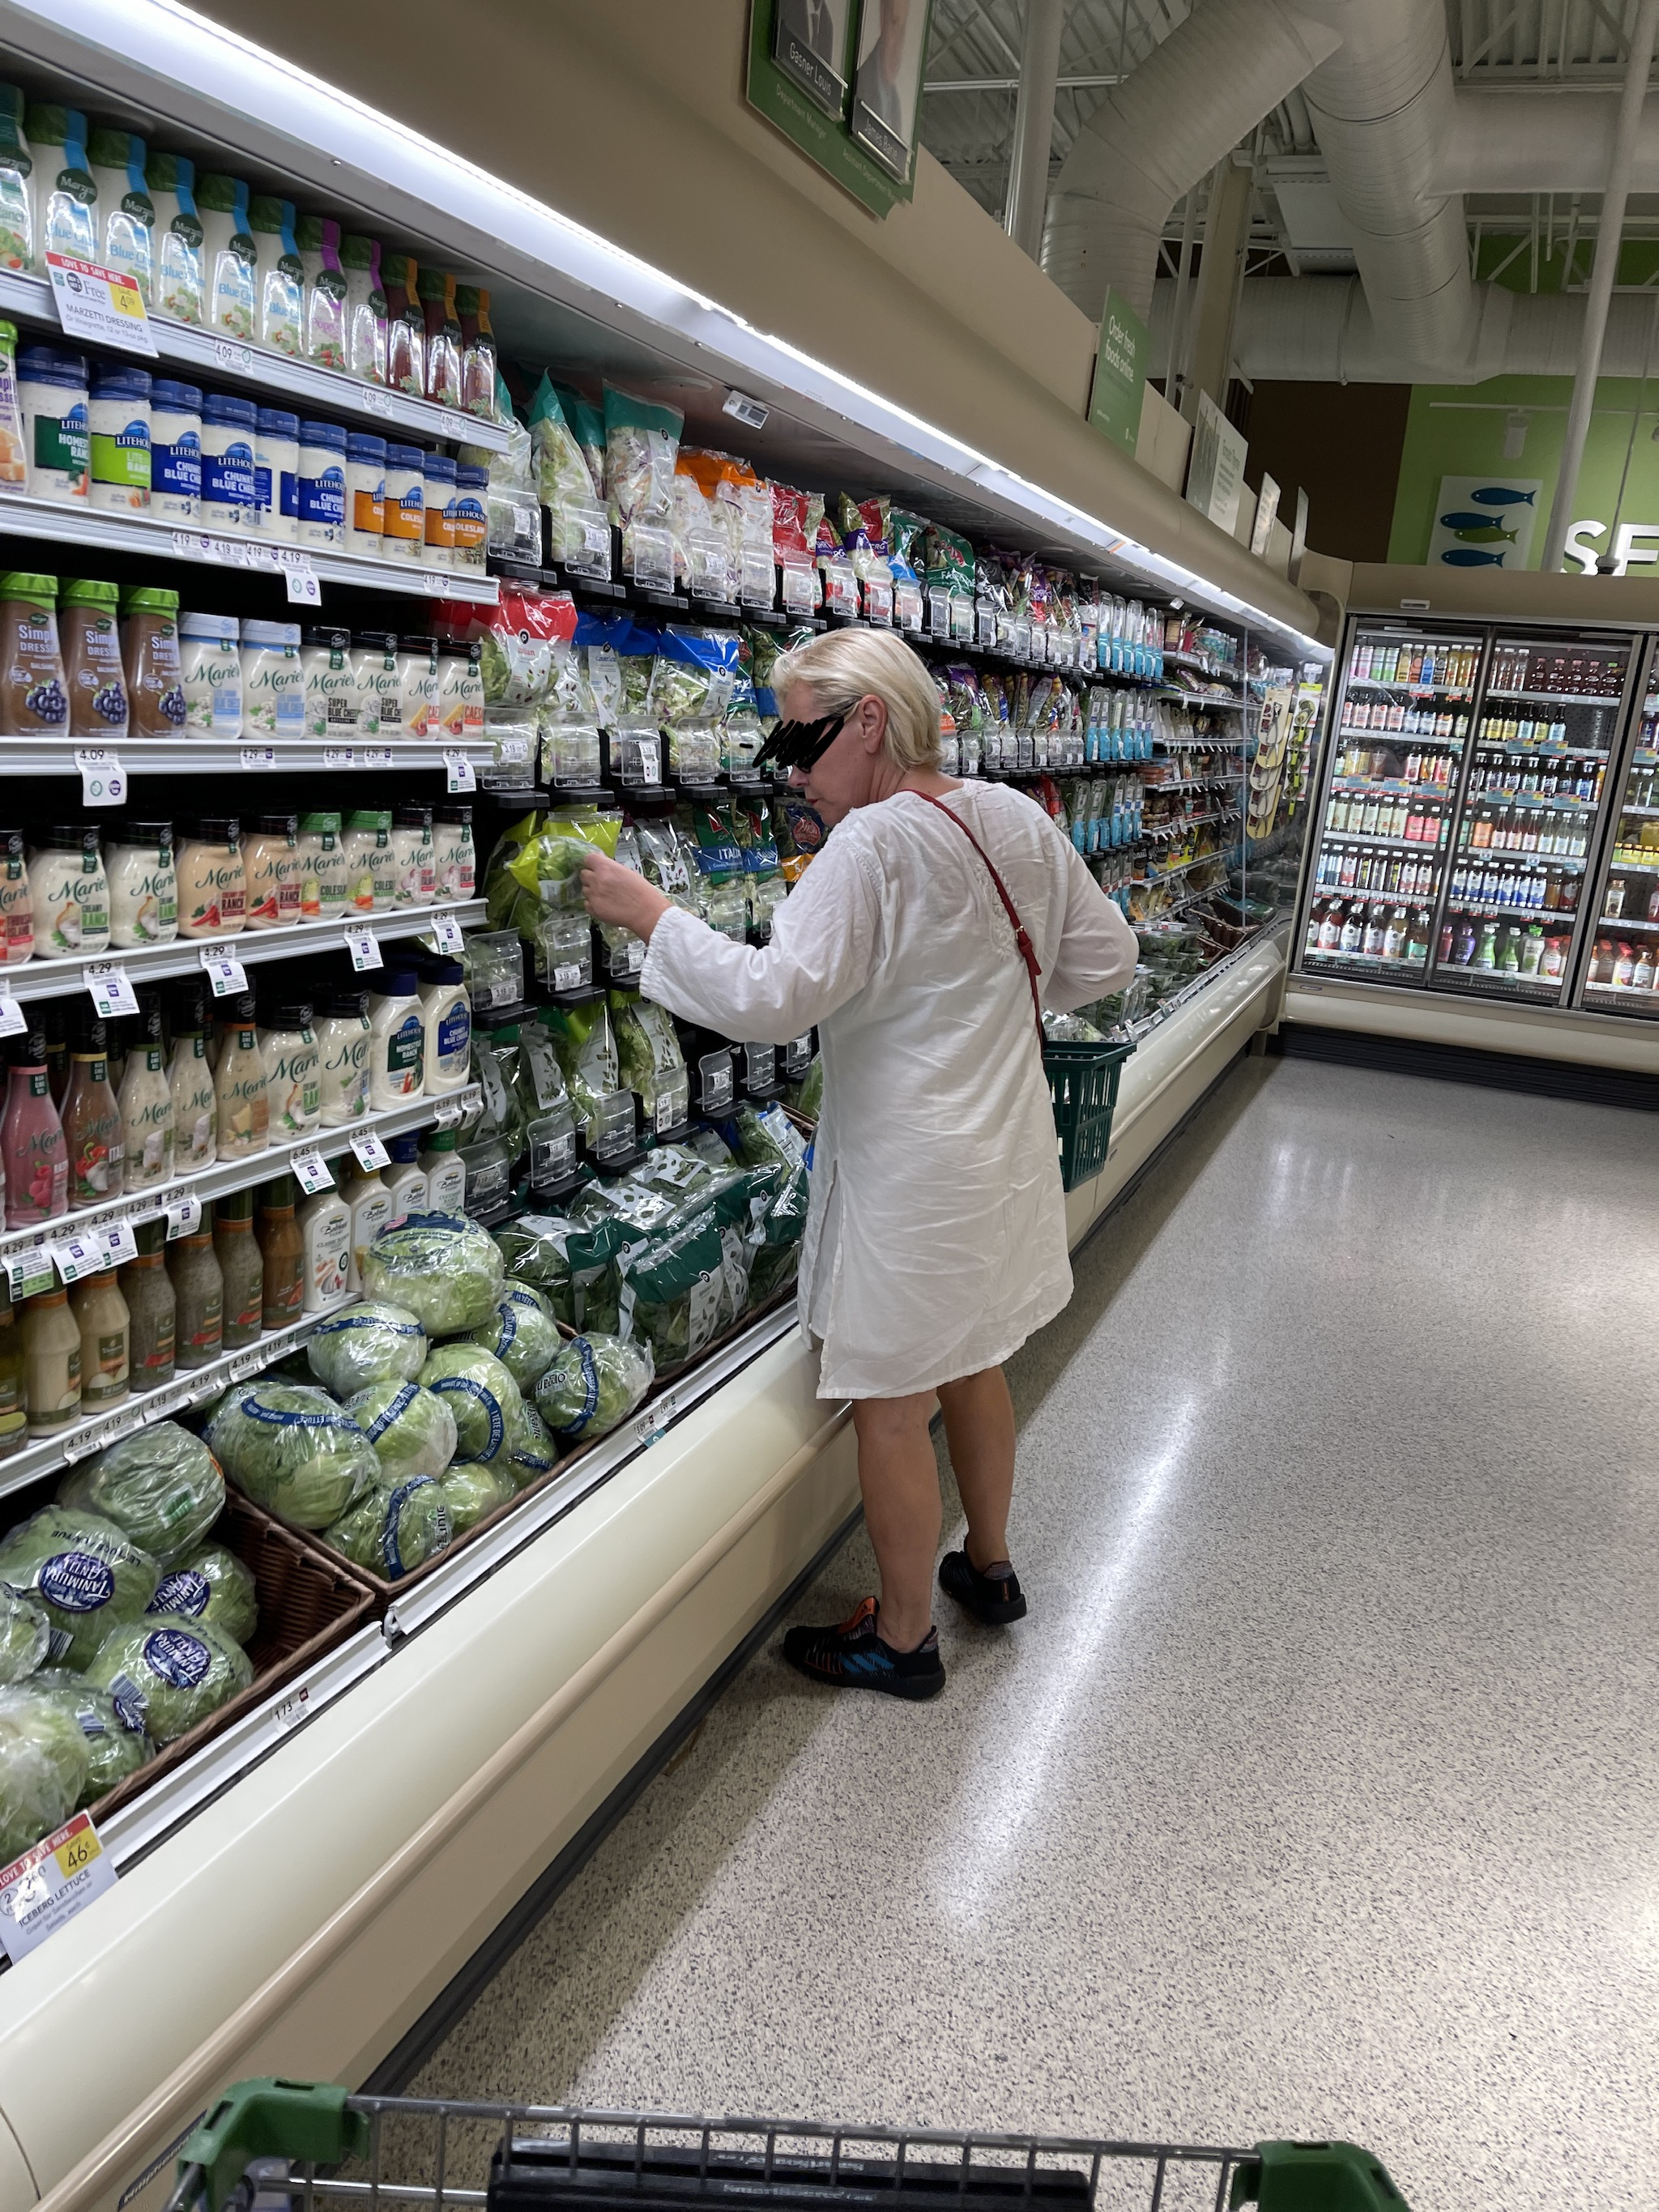 Publix Ignores Maskless Woman As Stunned Shoppers Ask Her To Cover Mouth, Nose